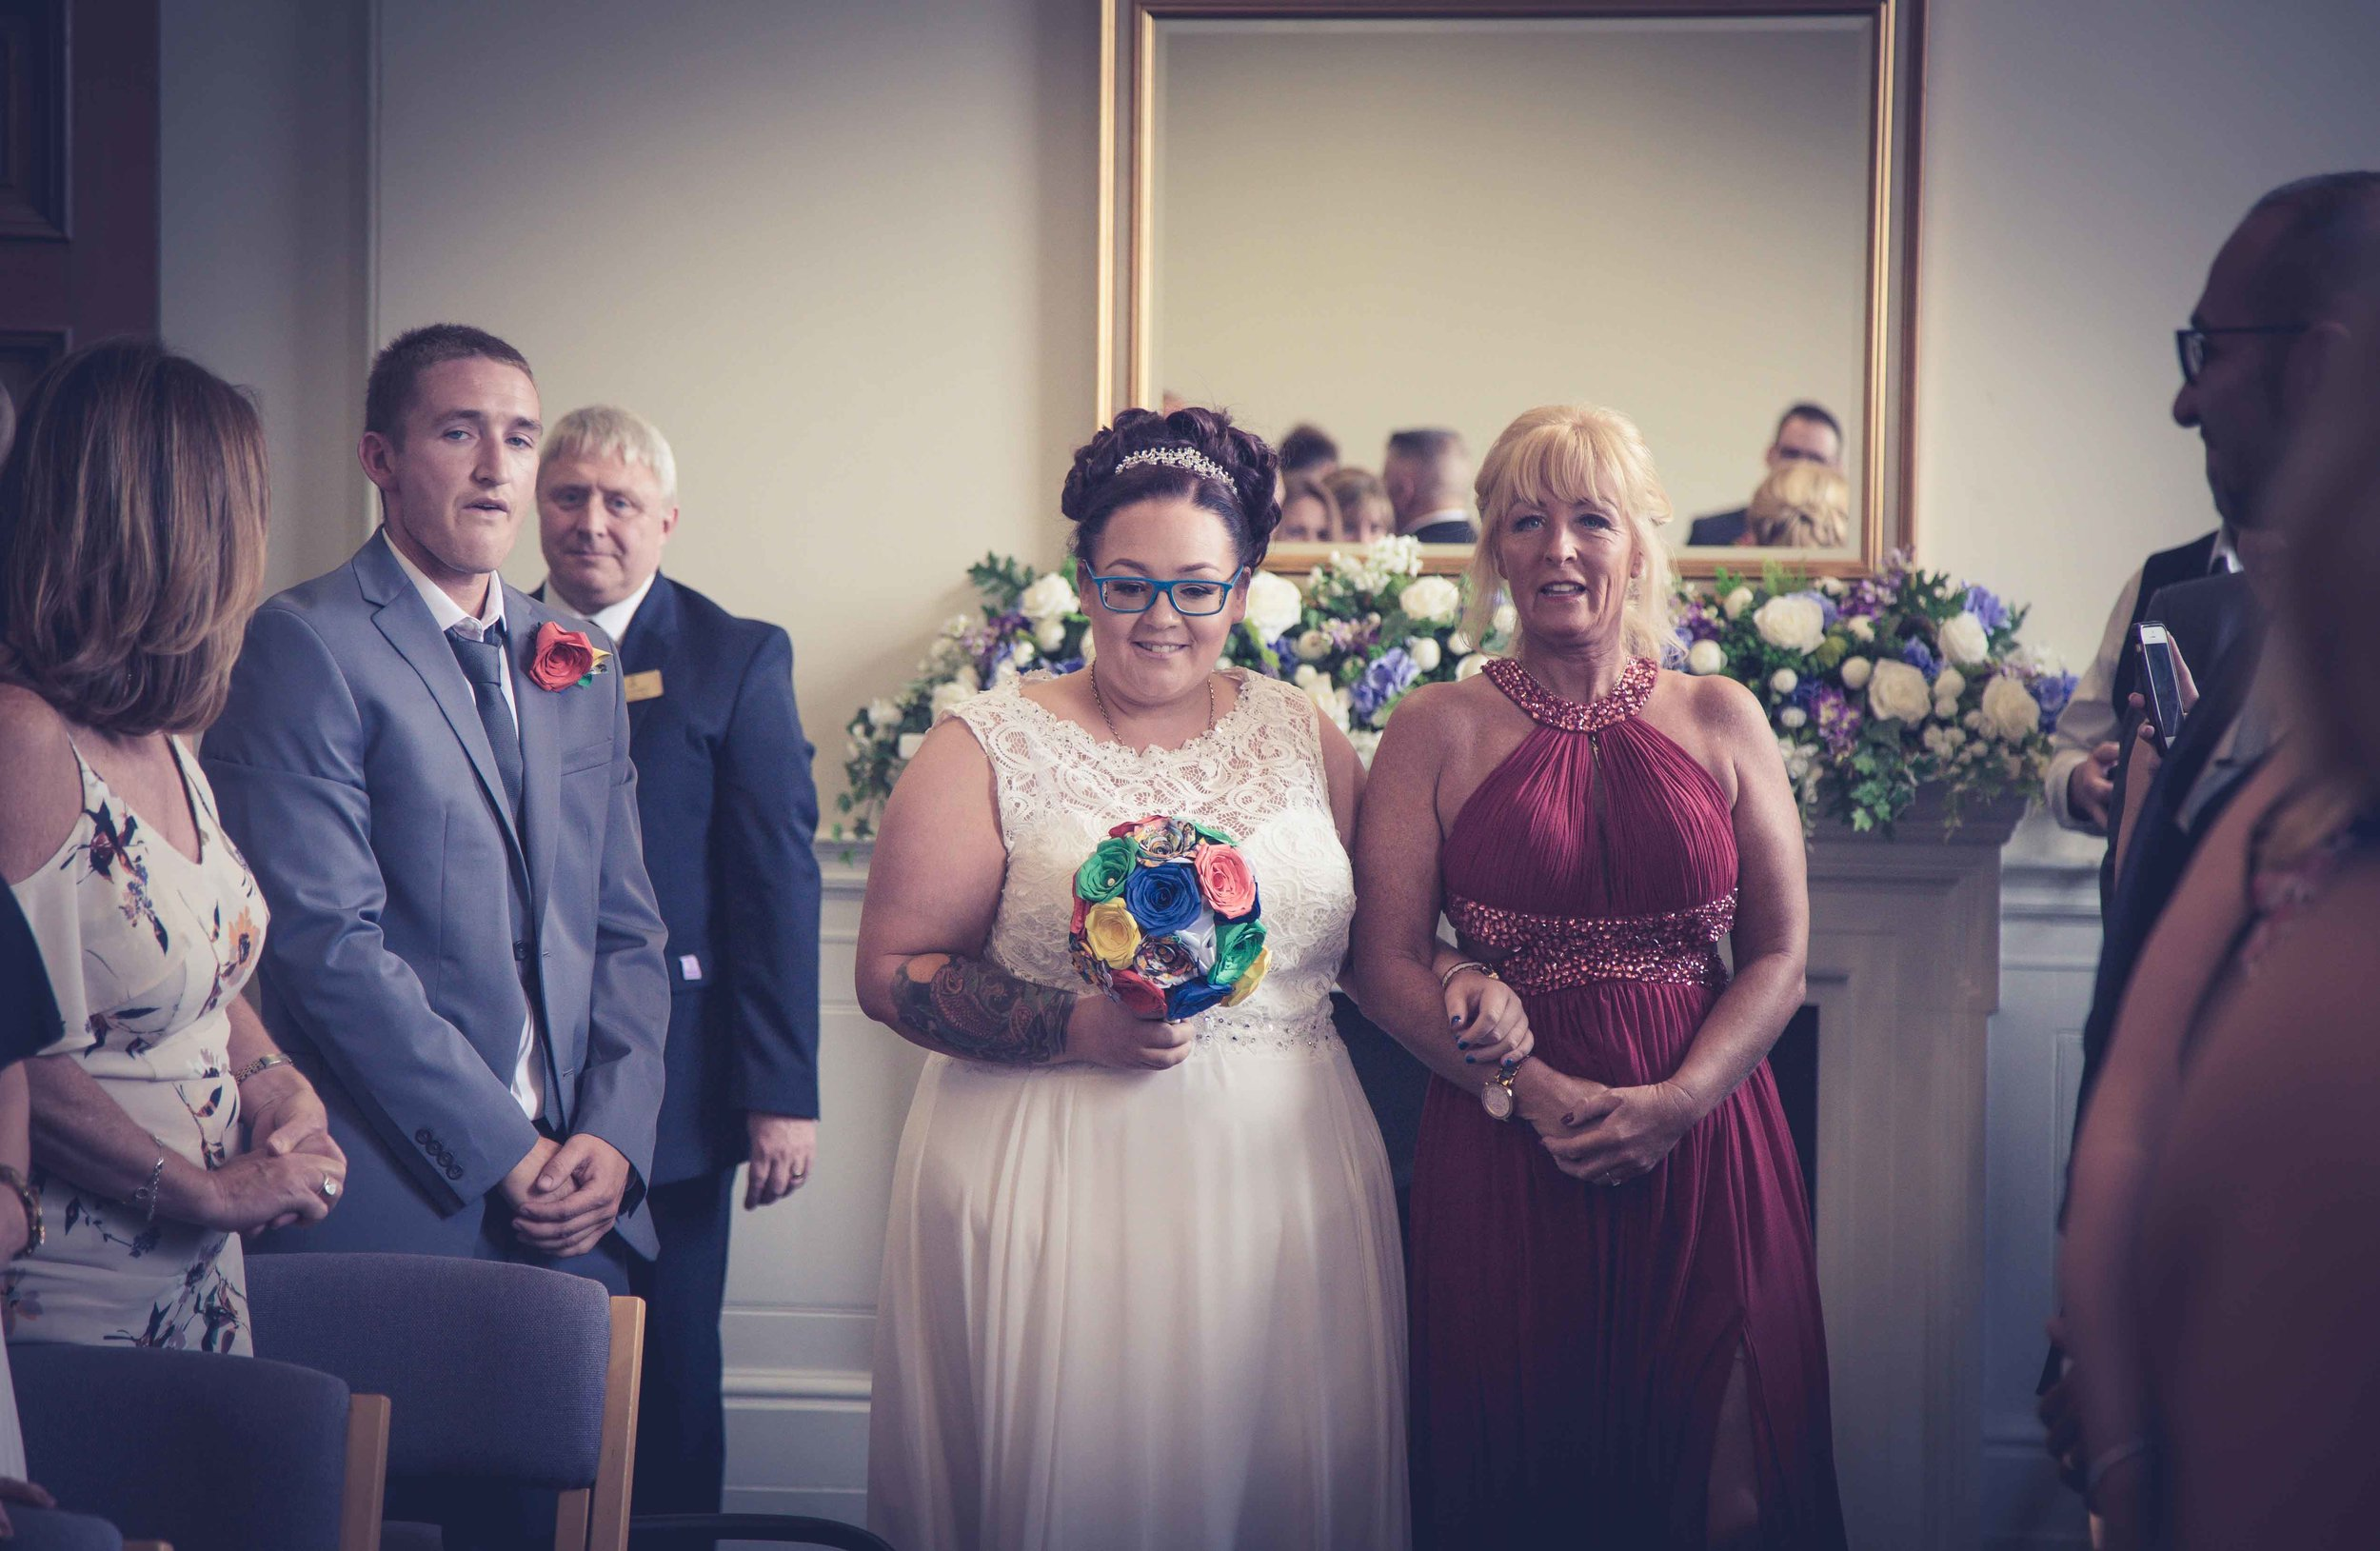 St georges hall wedding  (1 of 1)-41.jpg